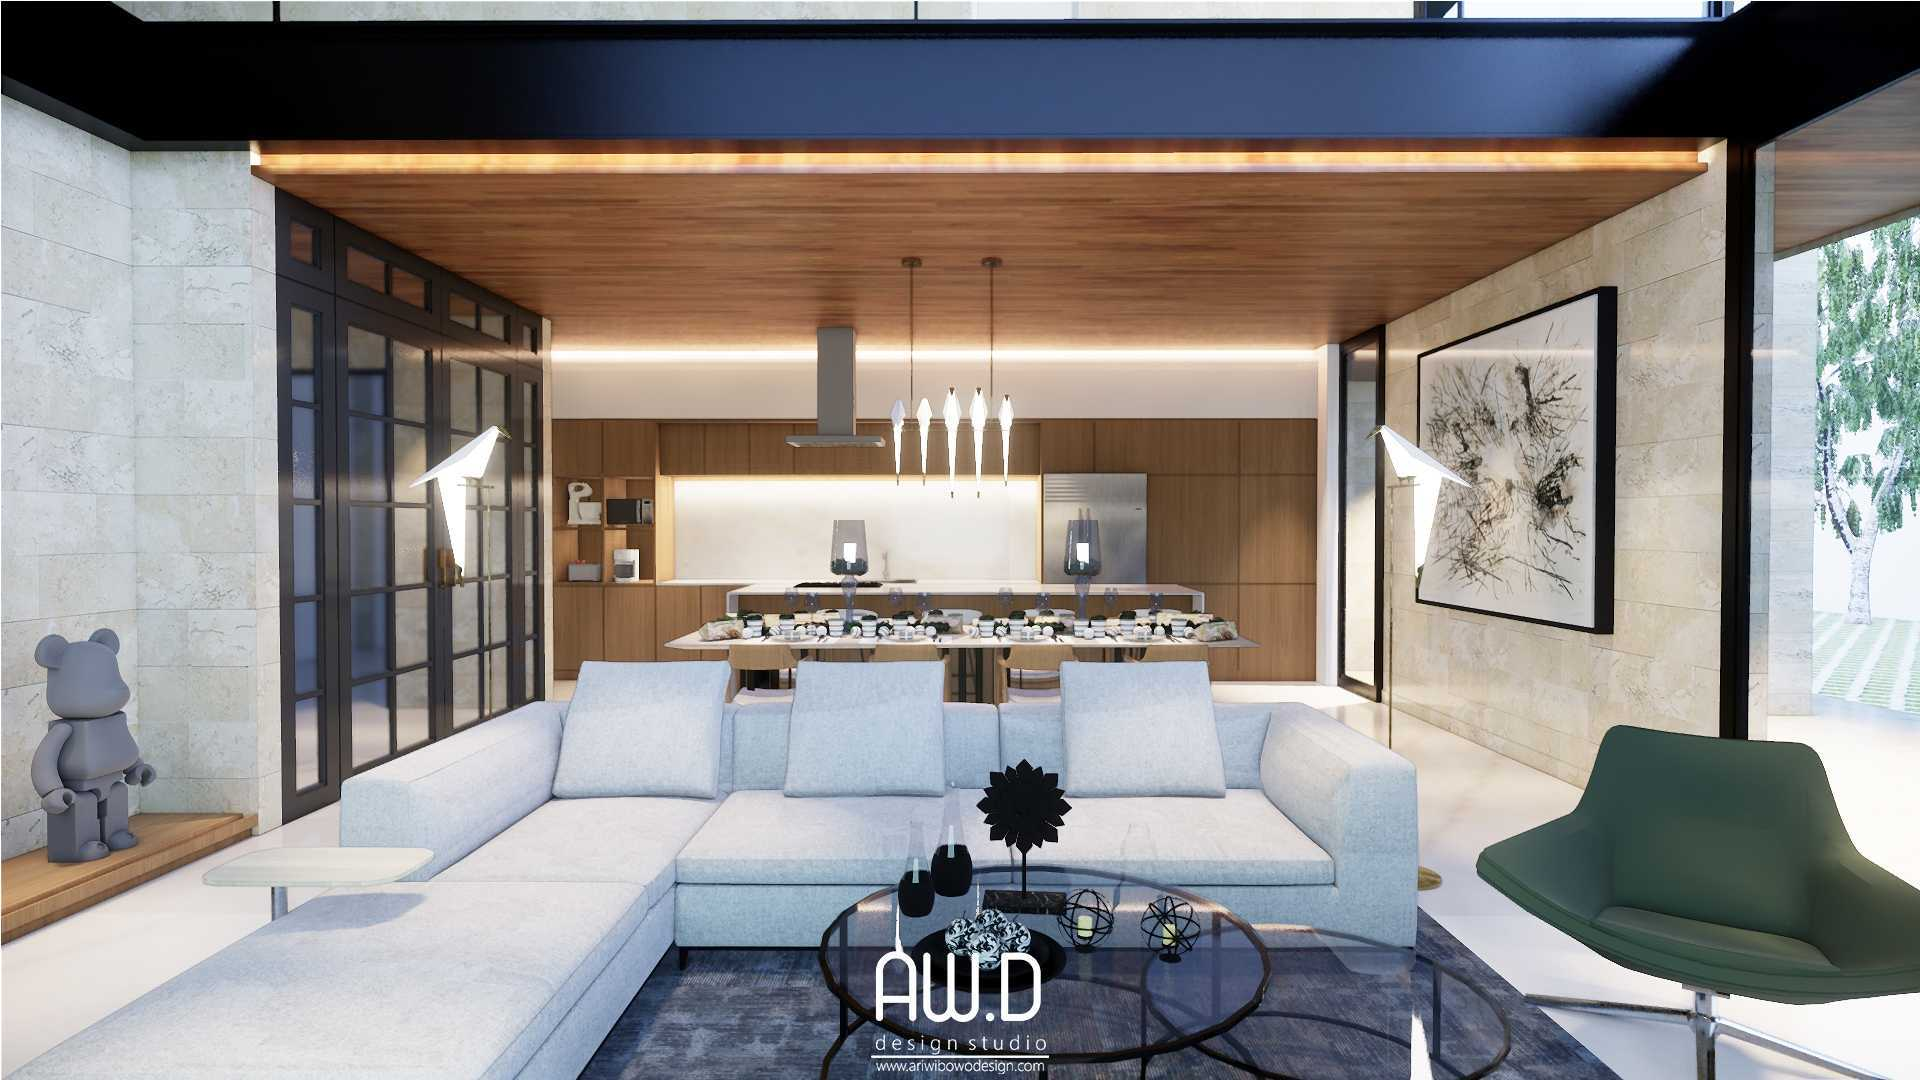 Ari Wibowo Design (Aw.d) Grt House Sulawesi, Indonesia Sulawesi, Indonesia Ari-Wibowo-Design-Awd-Grt-House Contemporary 73285